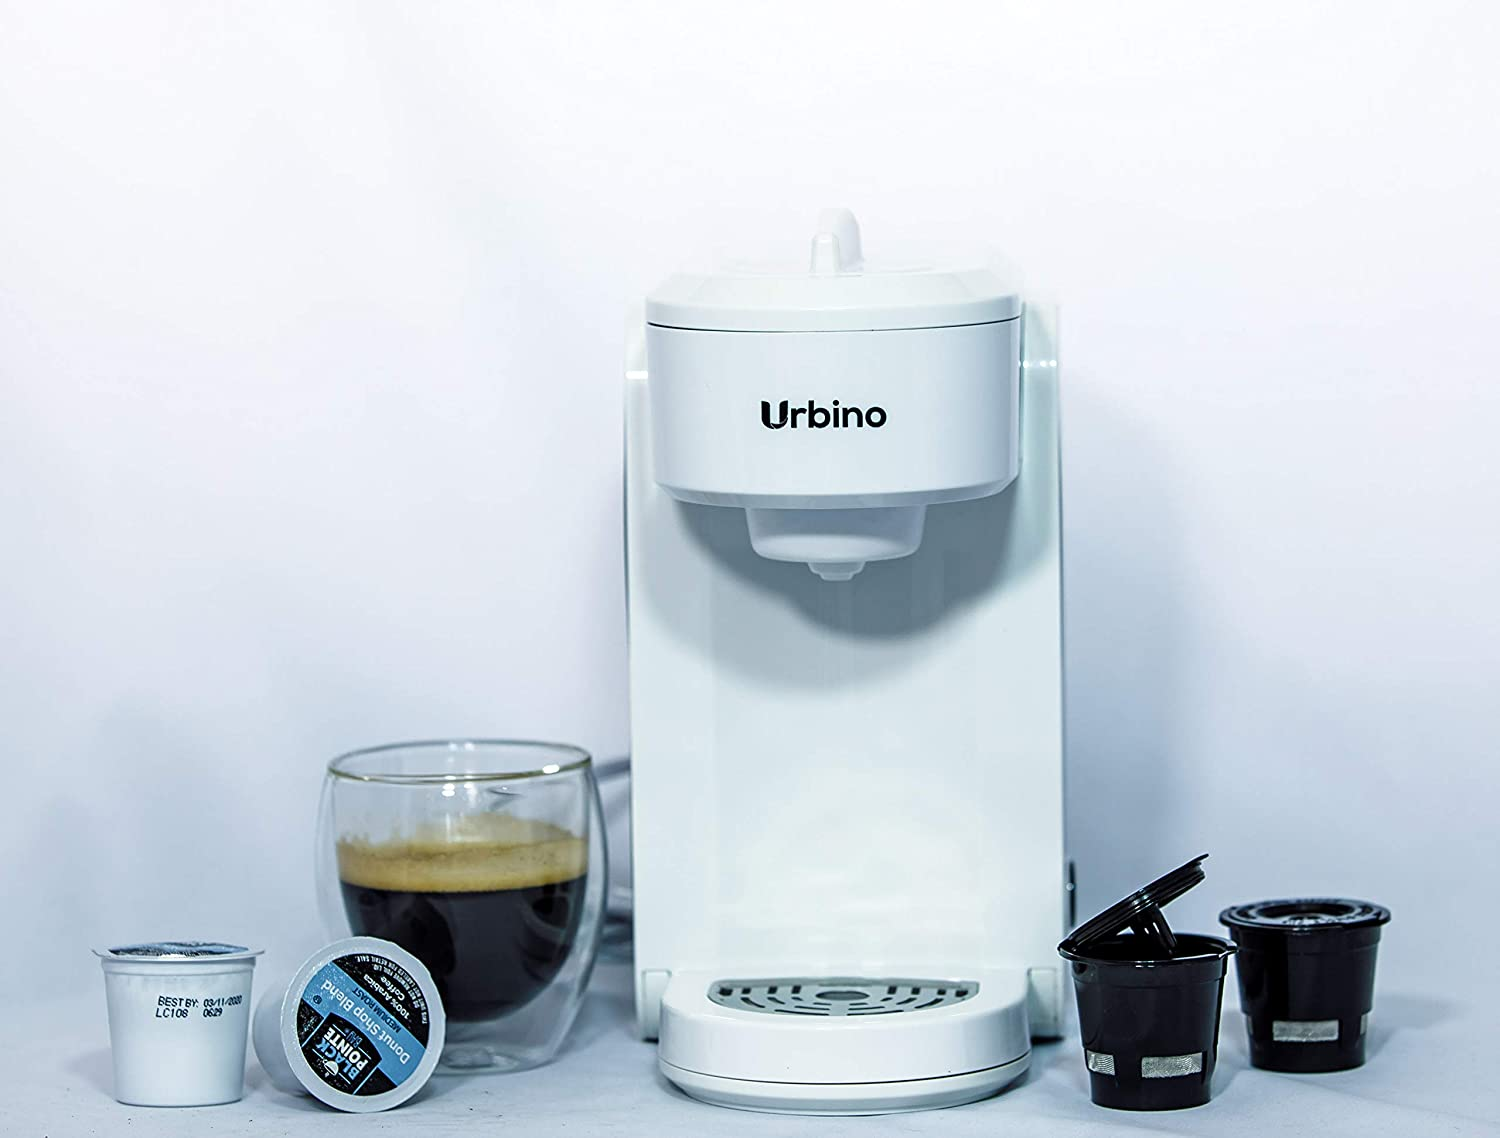 Stainless Steel//White Coffee Maker Single-serve compatible with K-cup pods ,Auto Shut Off,1000 Watts Urbino 300ml 2x free reusable ground coffee pods 10 OZ